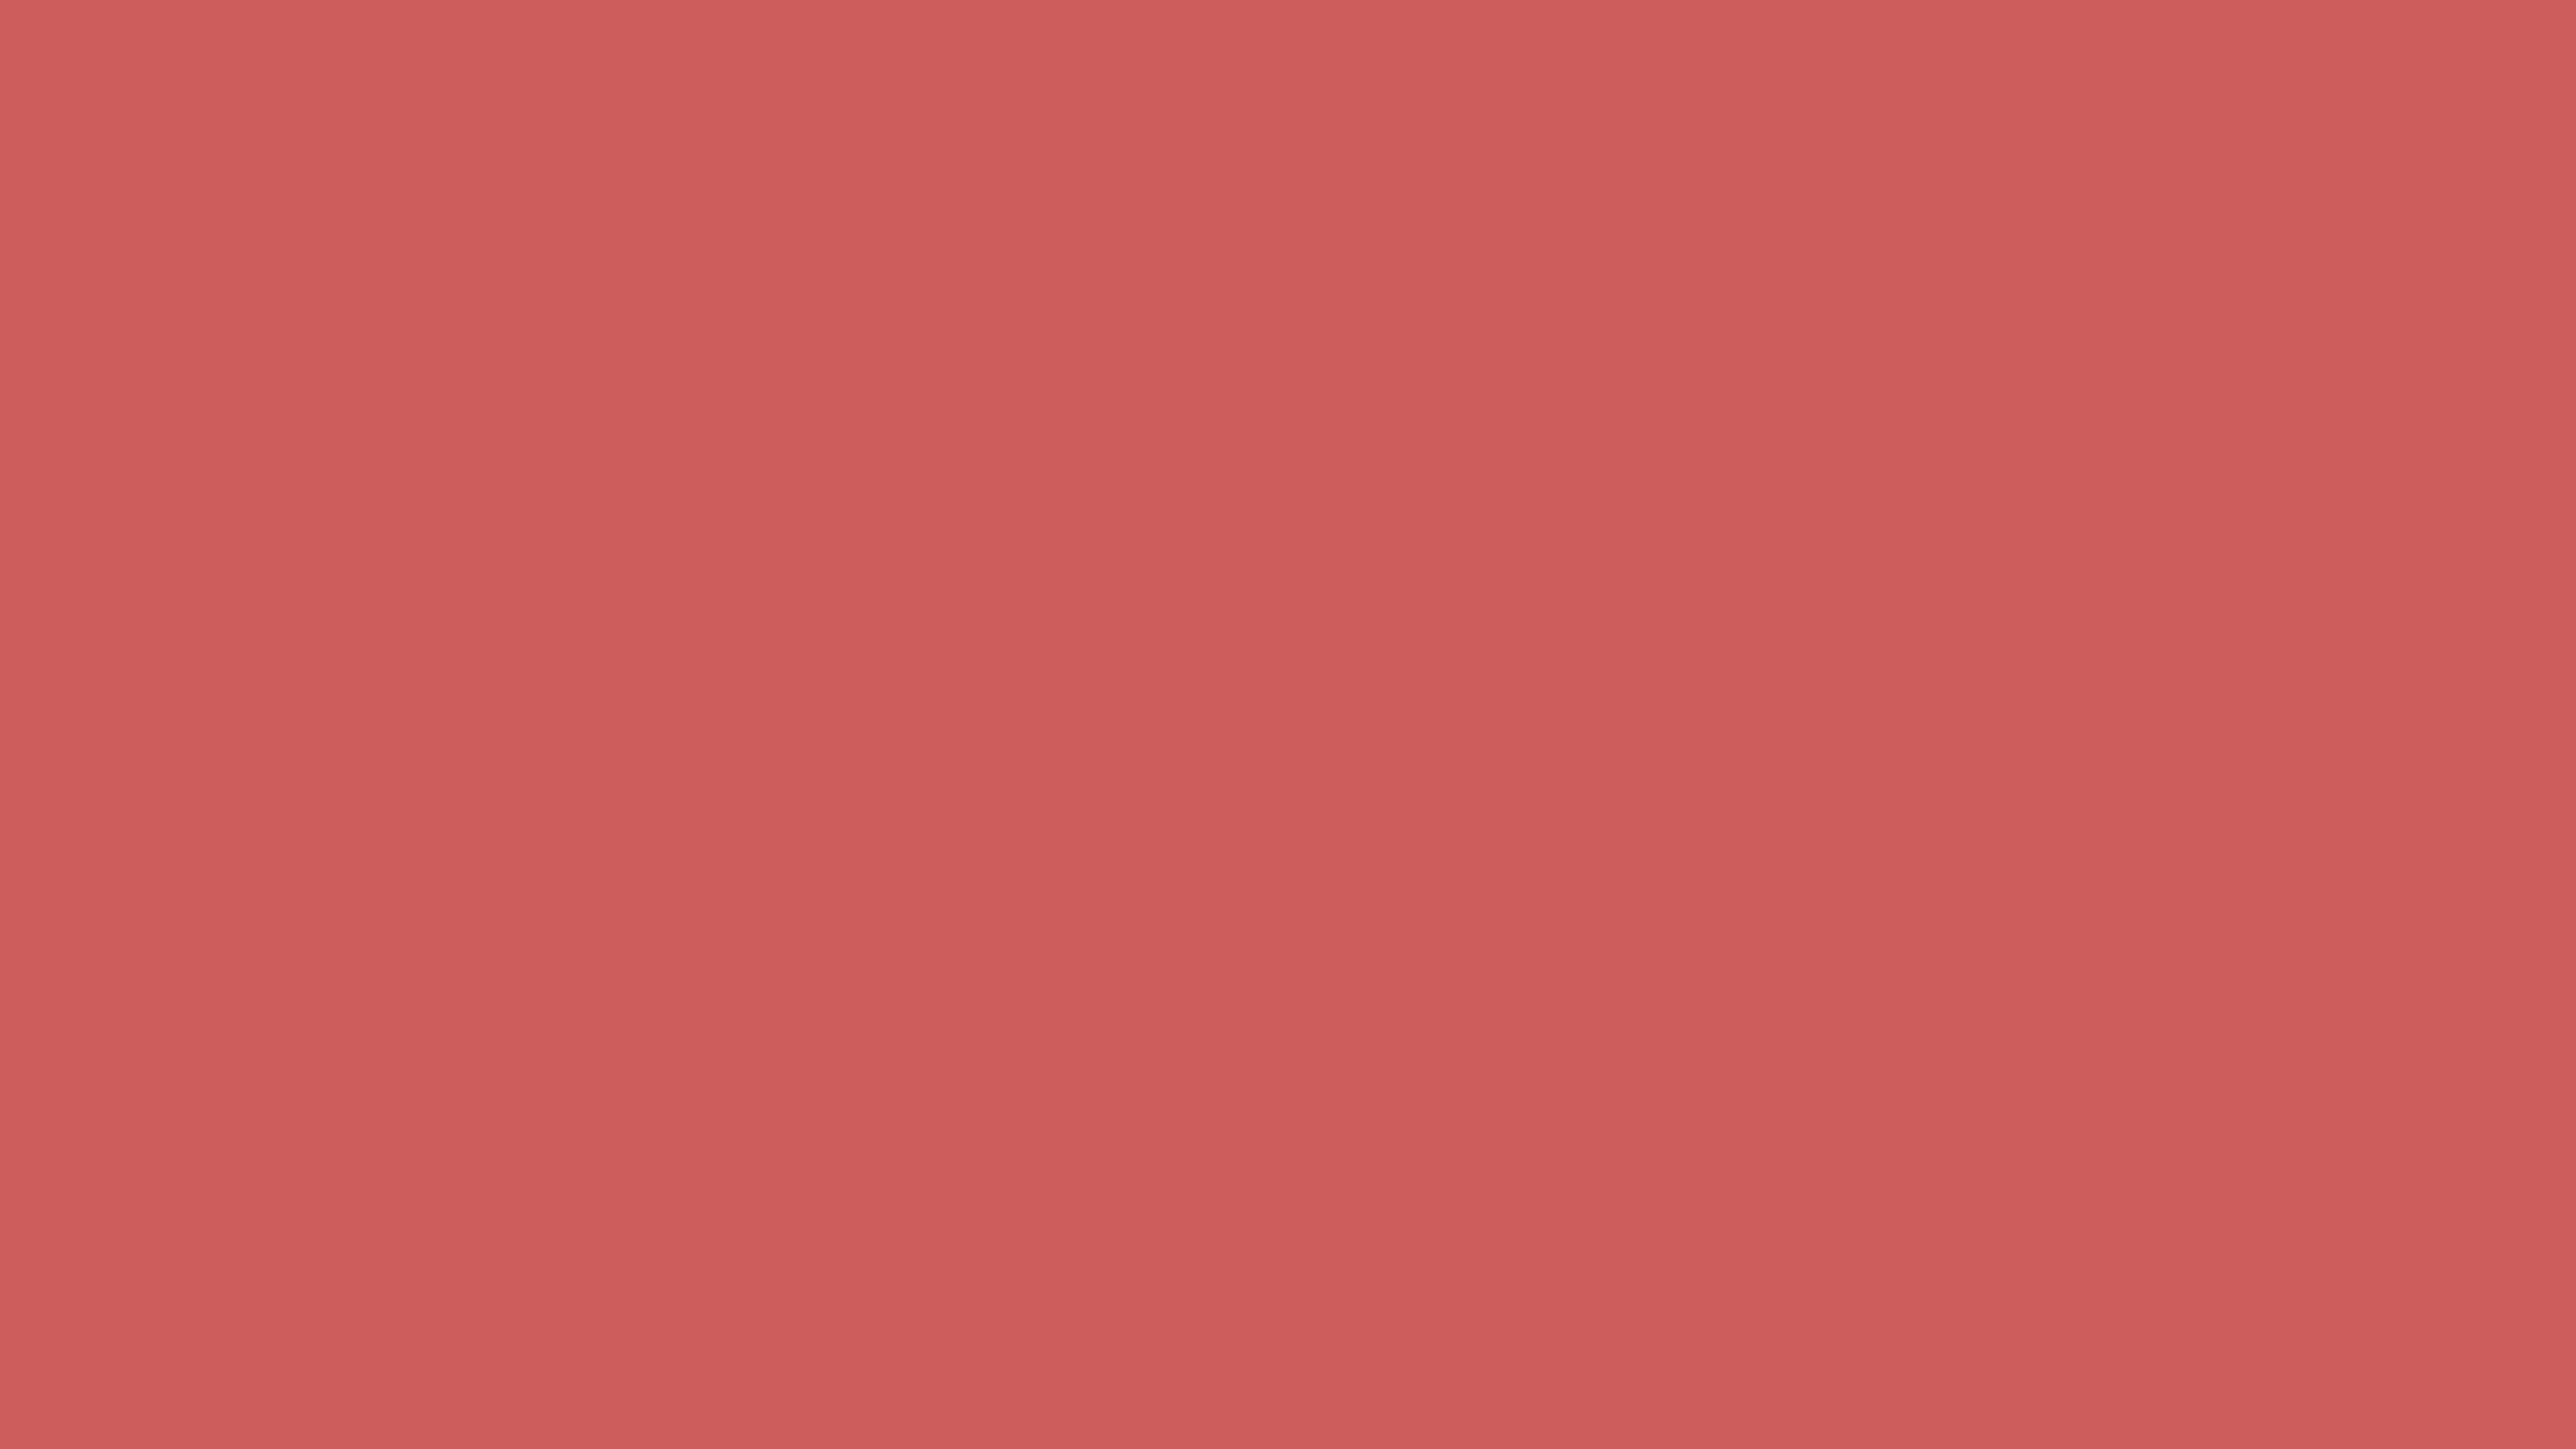 3840x2160 Indian Red Solid Color Background